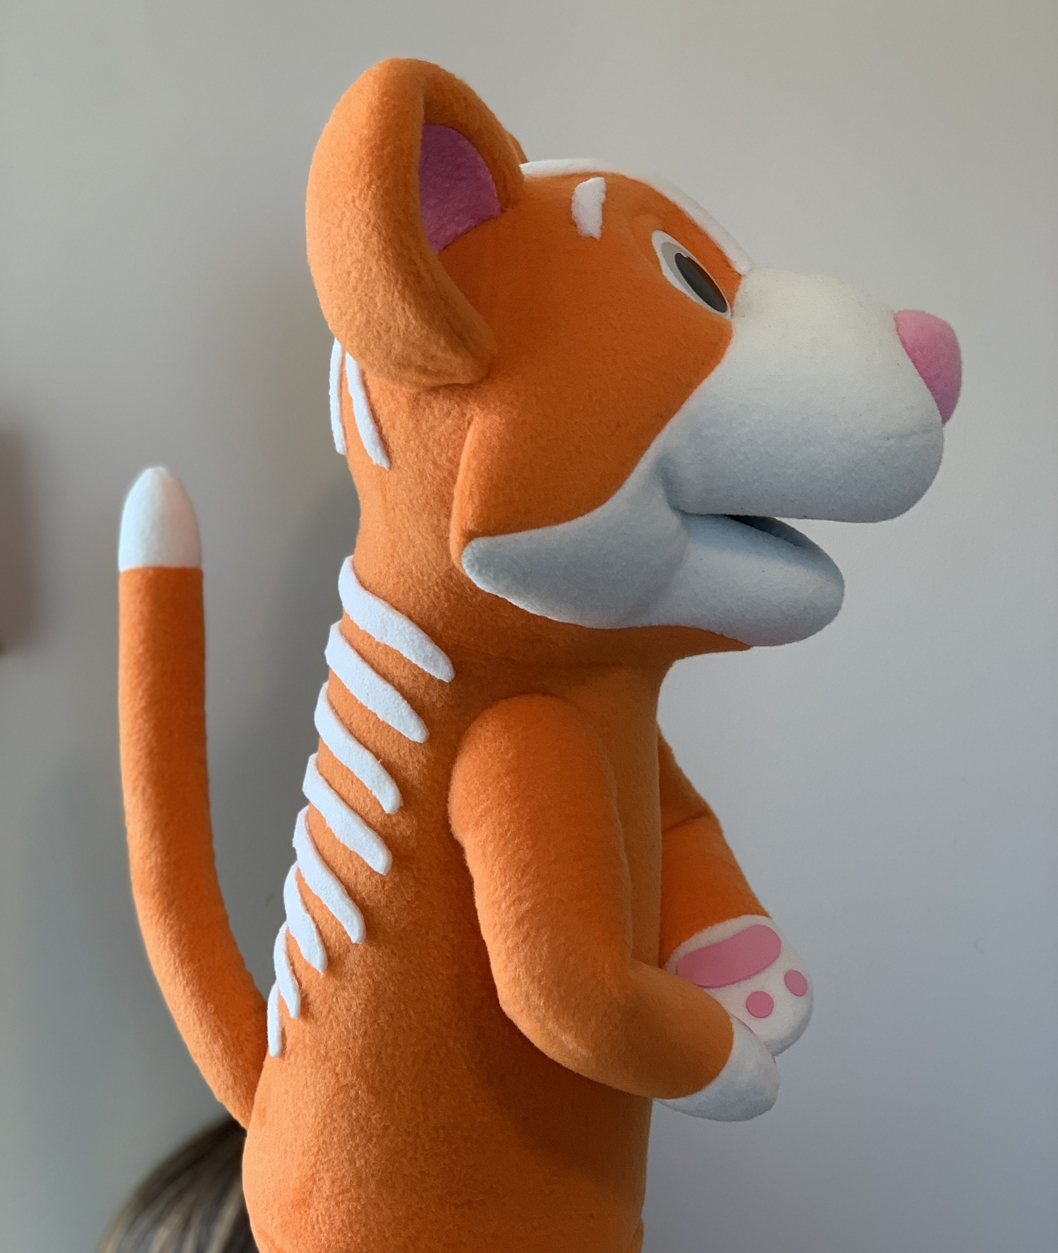 Custom Cat Puppet by Kristofer Sommerfeld